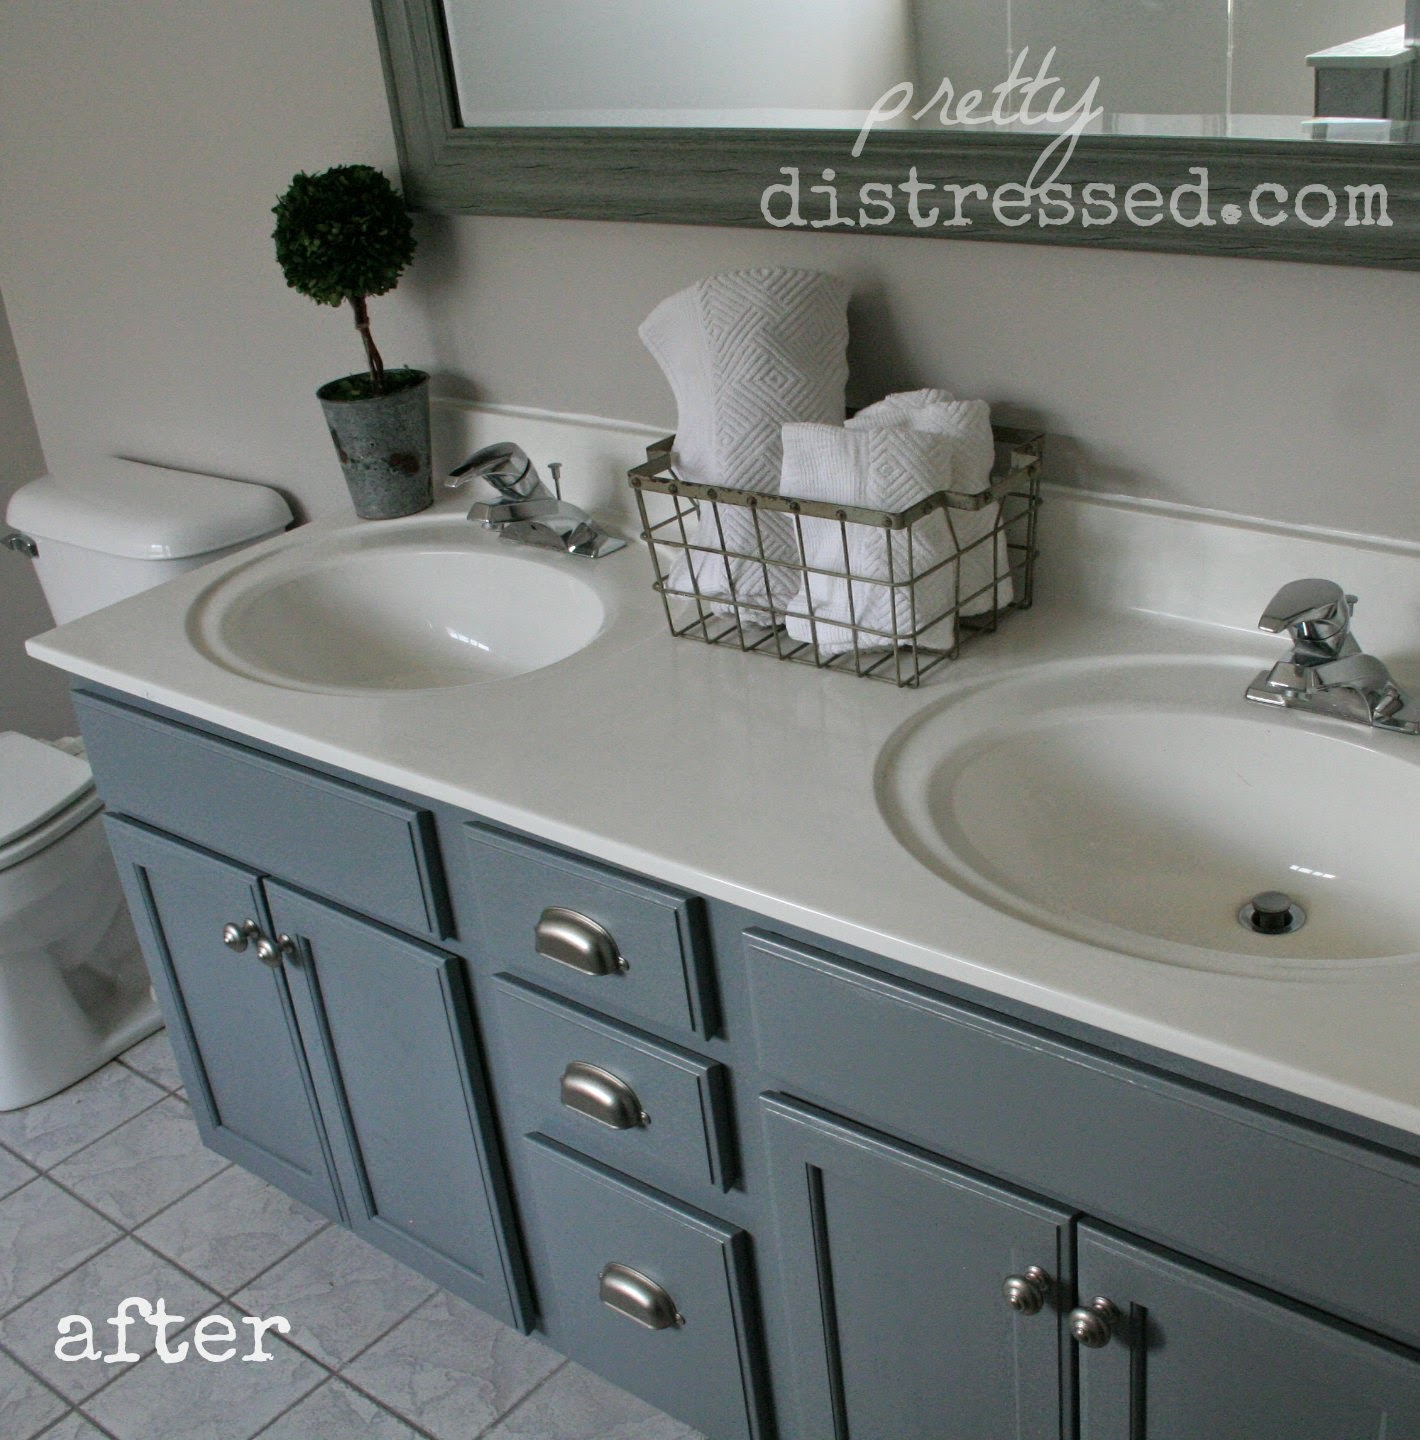 How to paint bathroom countertops - Do